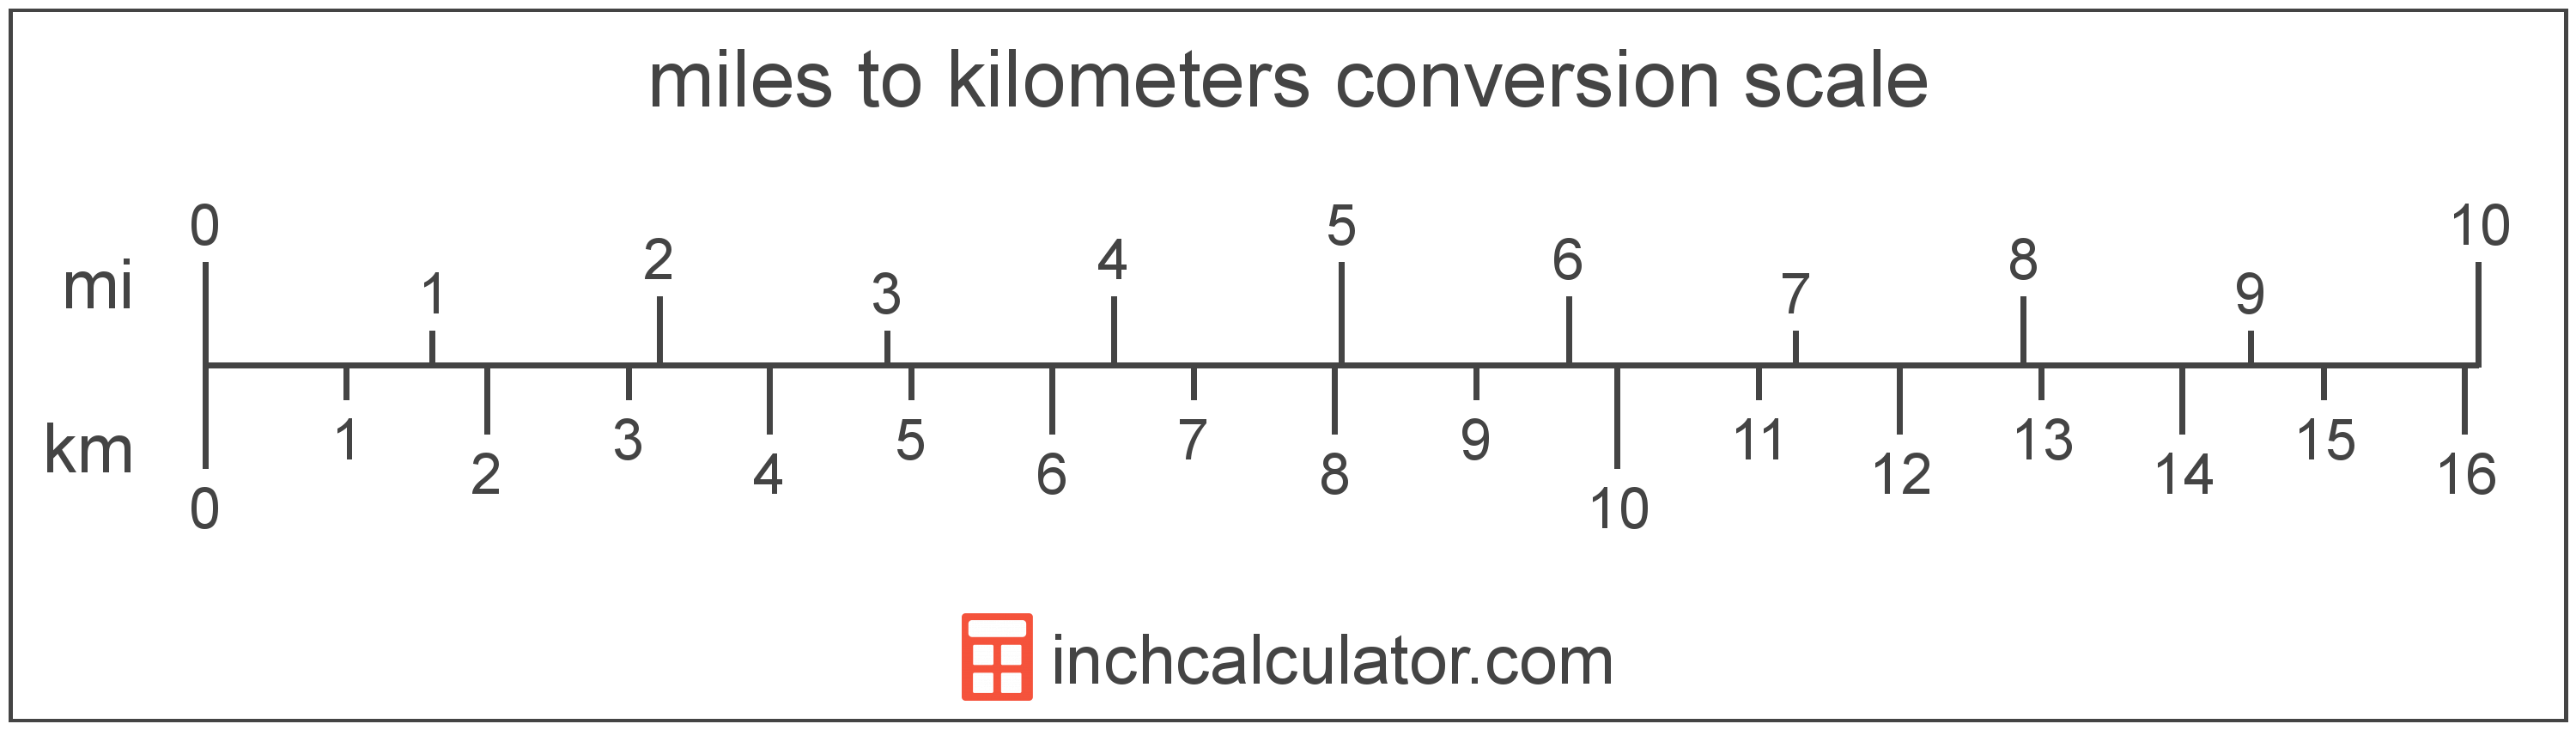 kilometers and centimeters are units used to measure length